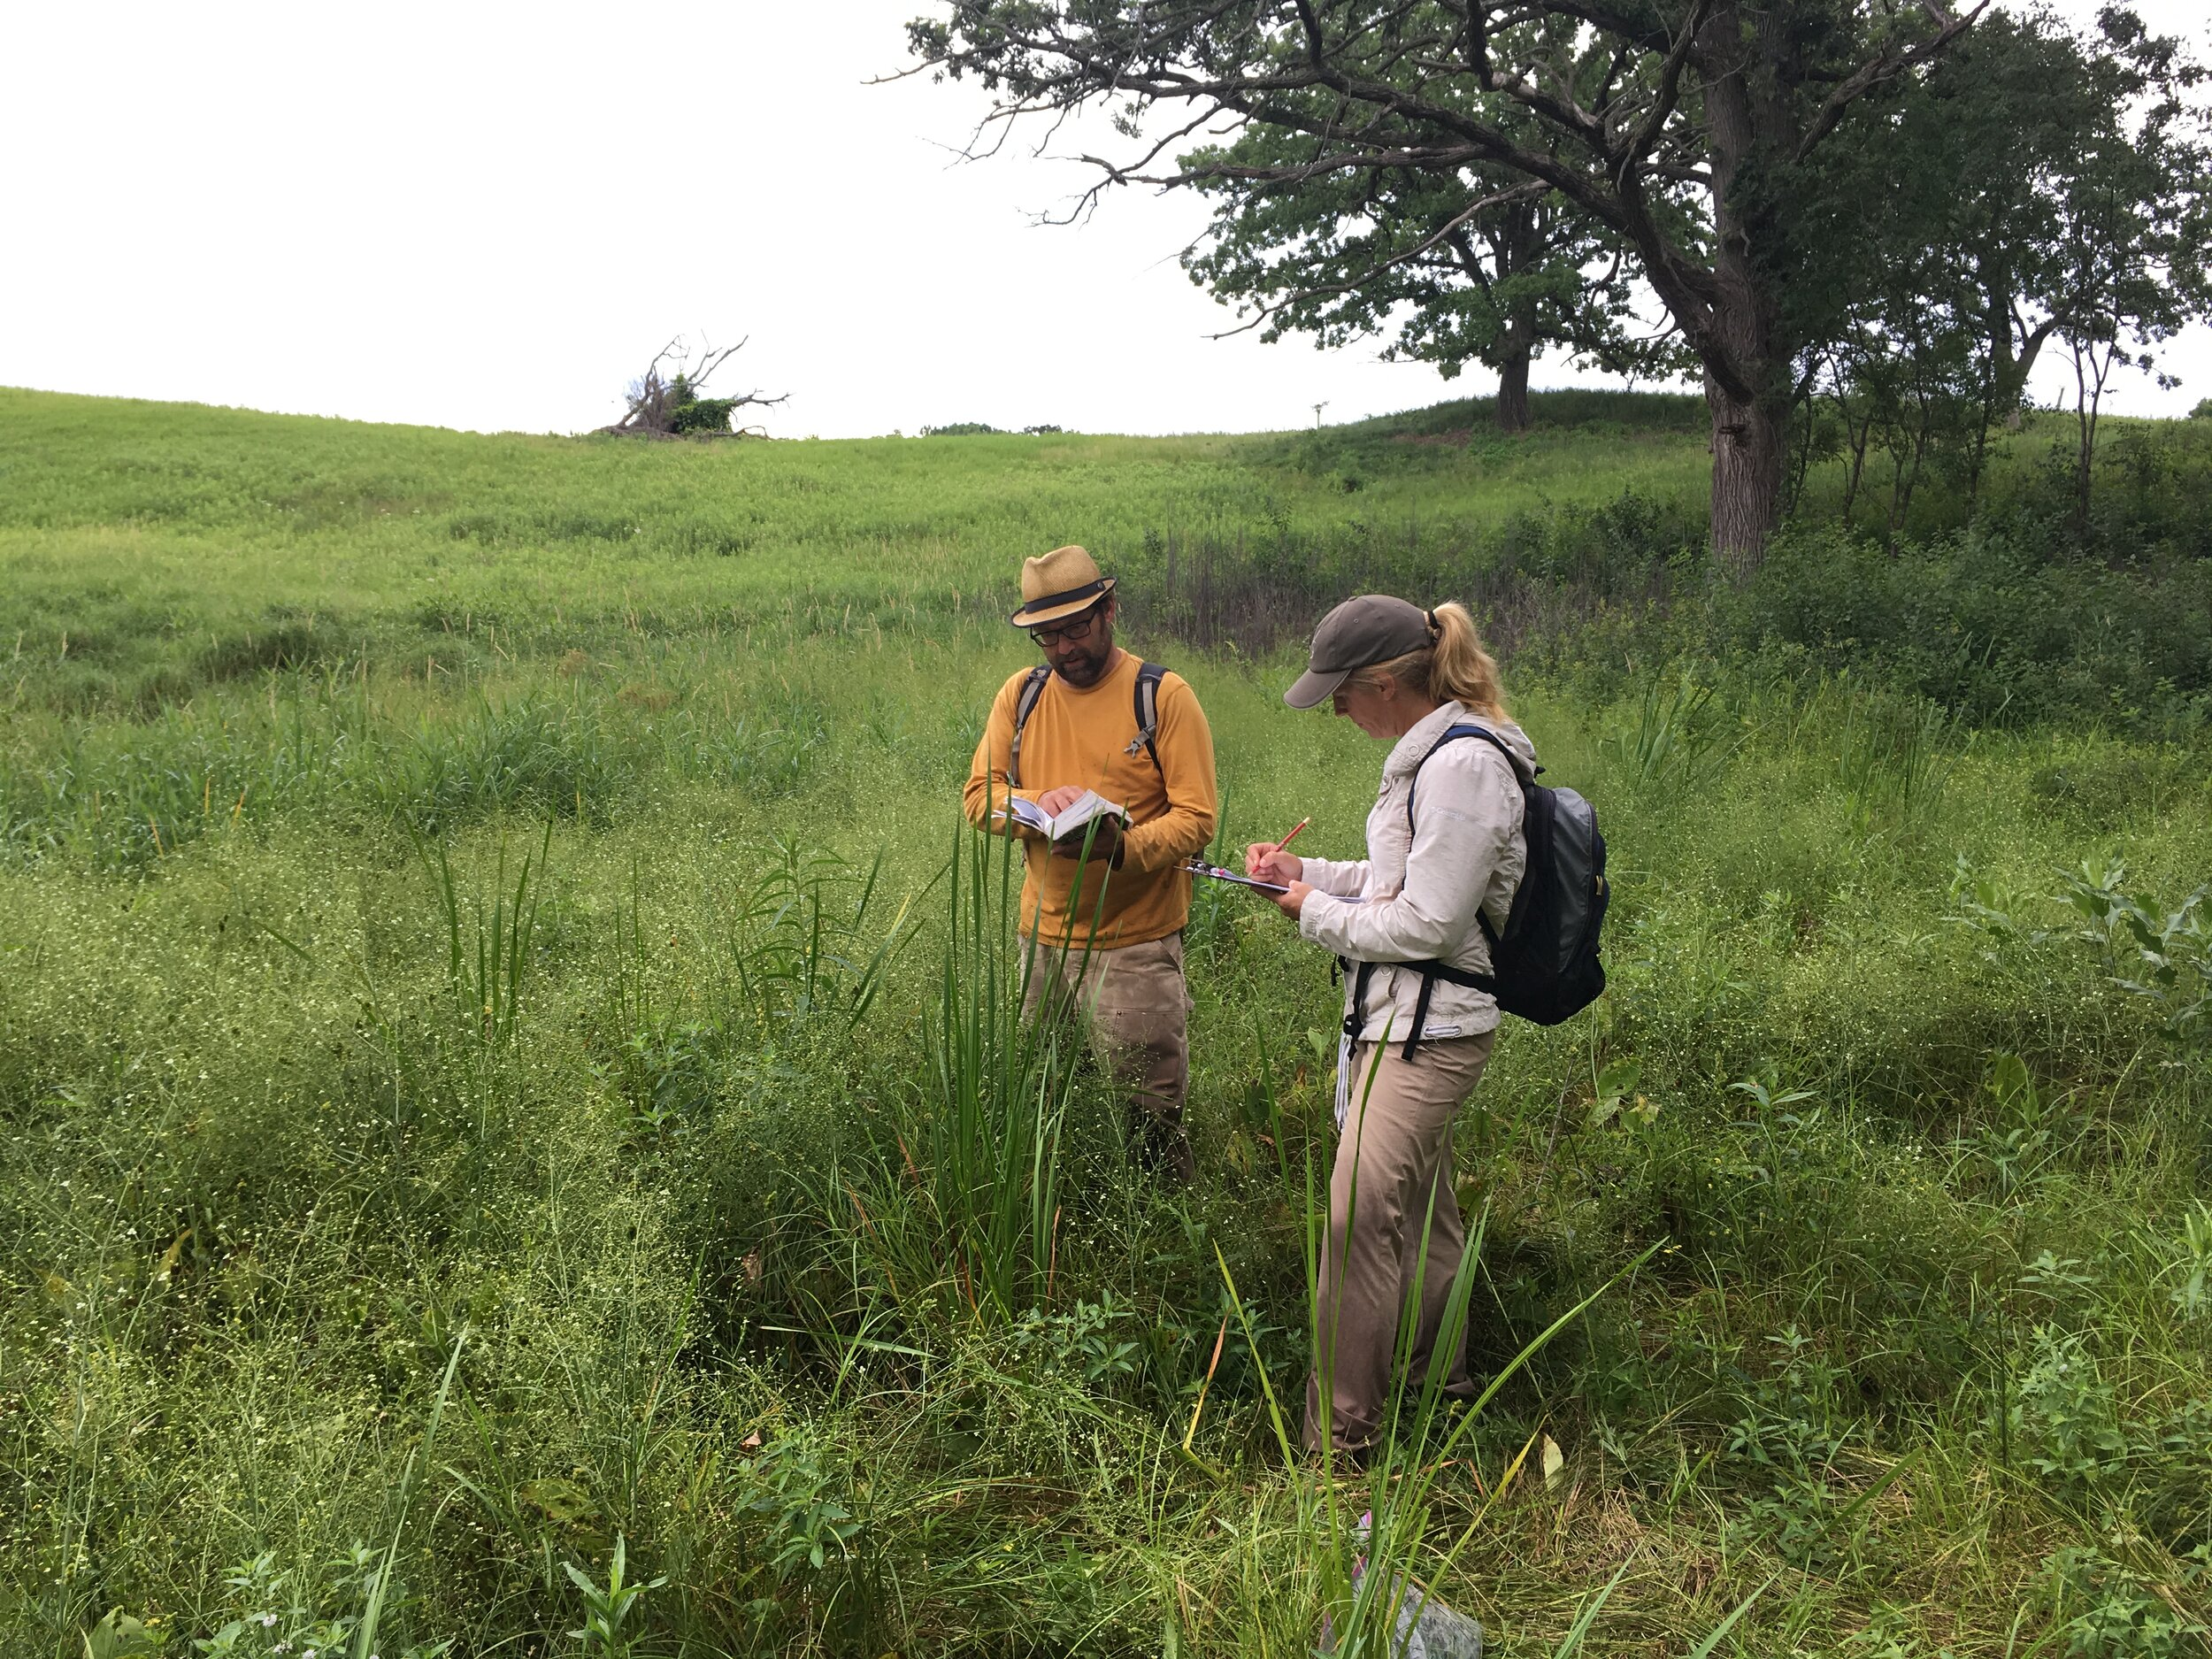 Above: Tony Randazzo (left) in the field with Tara Kelly (right) identifying a plant. Some people stop to smell the roses, whereas Tony always stops to identify a sedge. His eye for detail and love of native plants is evident in his photography as he takes a closer look at the colors and textures of our natural world.